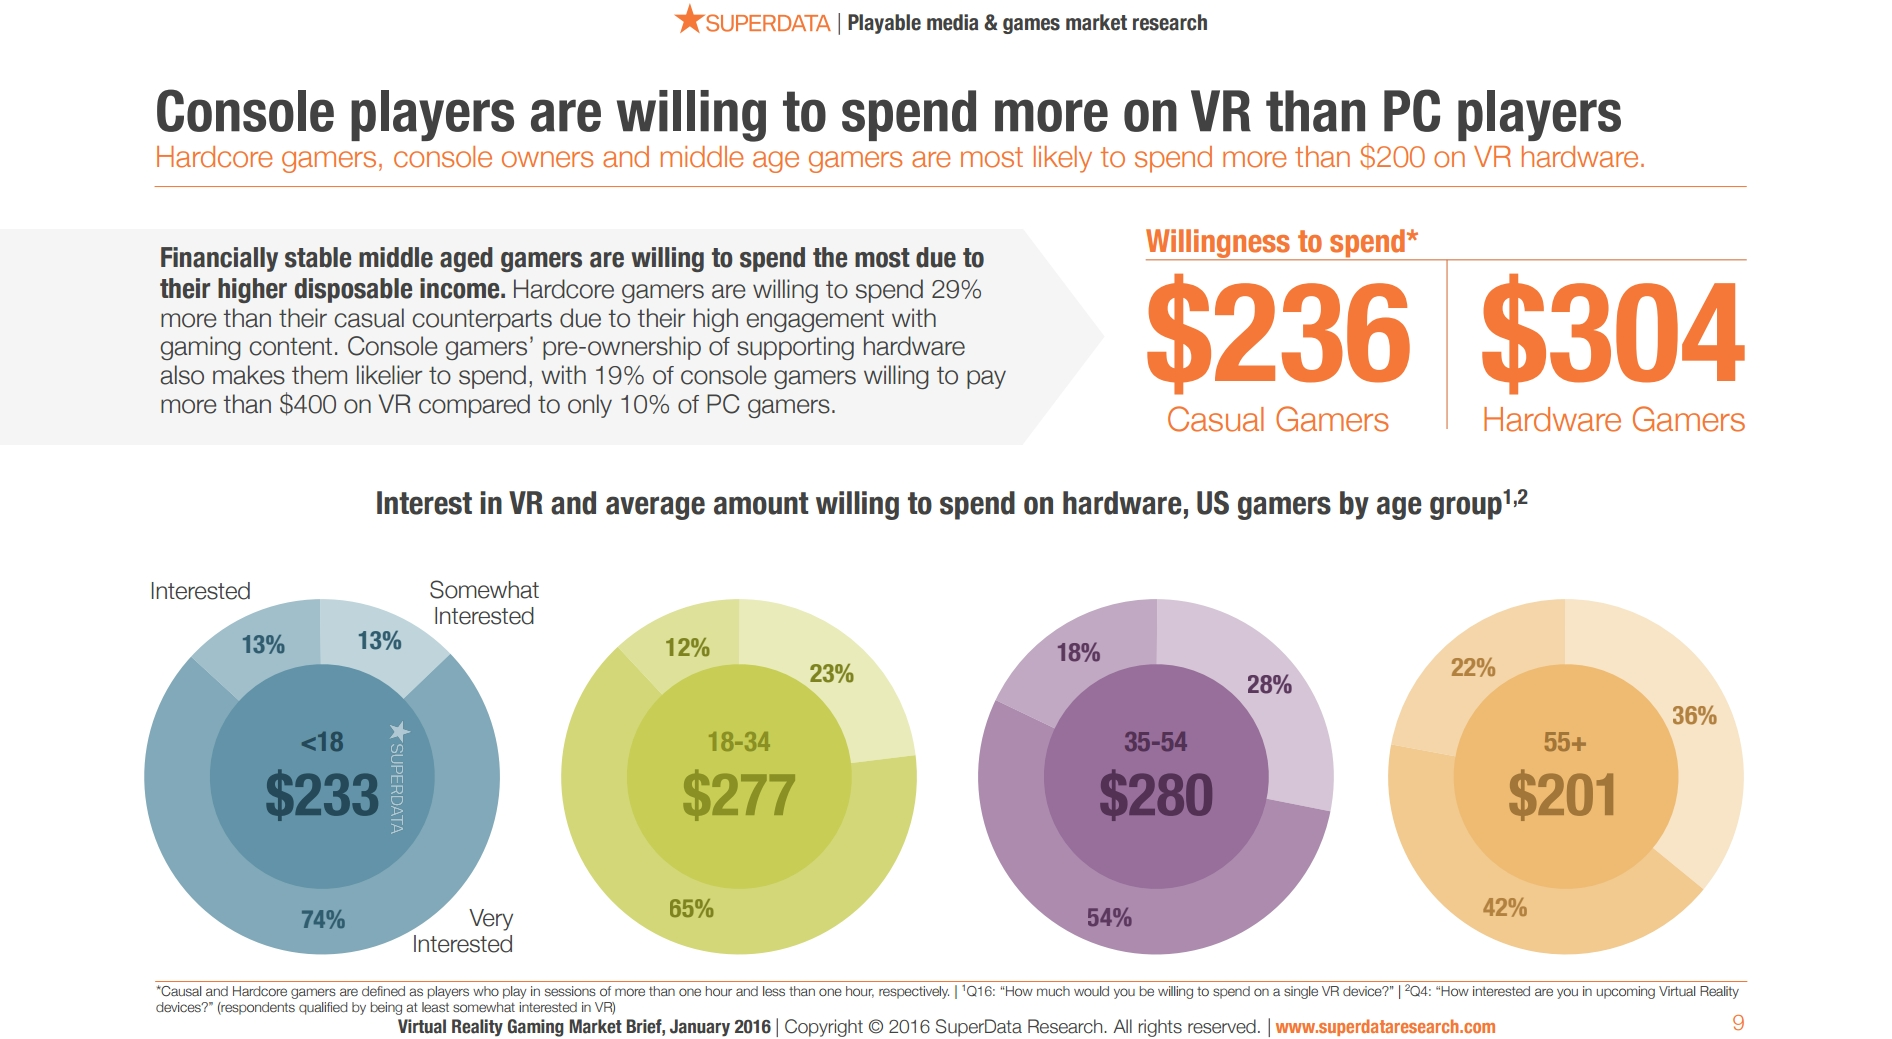 PSVR To Be Priced At $400 600, To Sell 1.9M In 2016